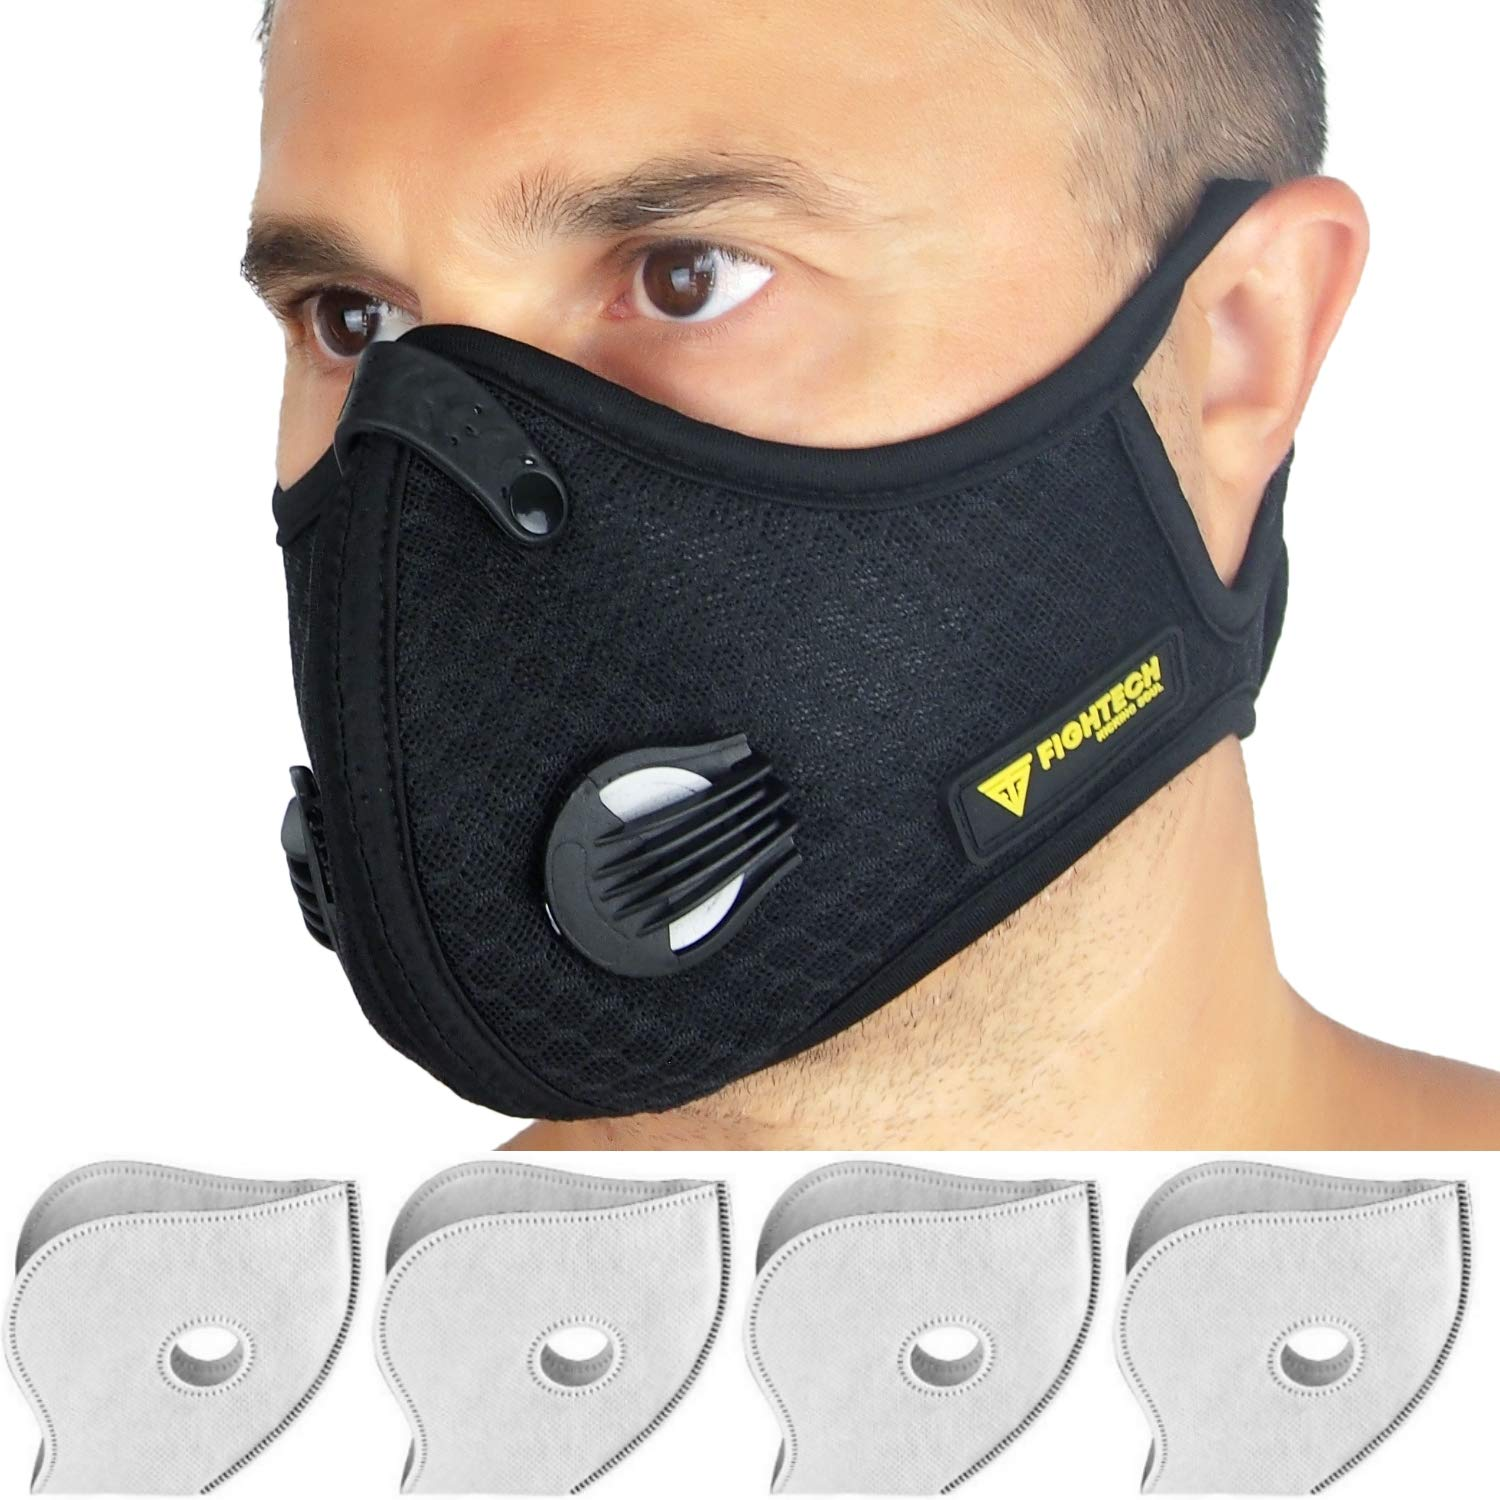 Dust Mask by Fightech | Mouth Mask Respirator with 4 Carbon N99 Filters for Pollution Pollen Allergy Woodworking Mowing Running | Washable and Reusable Mesh (Black Mesh) by FIGHTECH